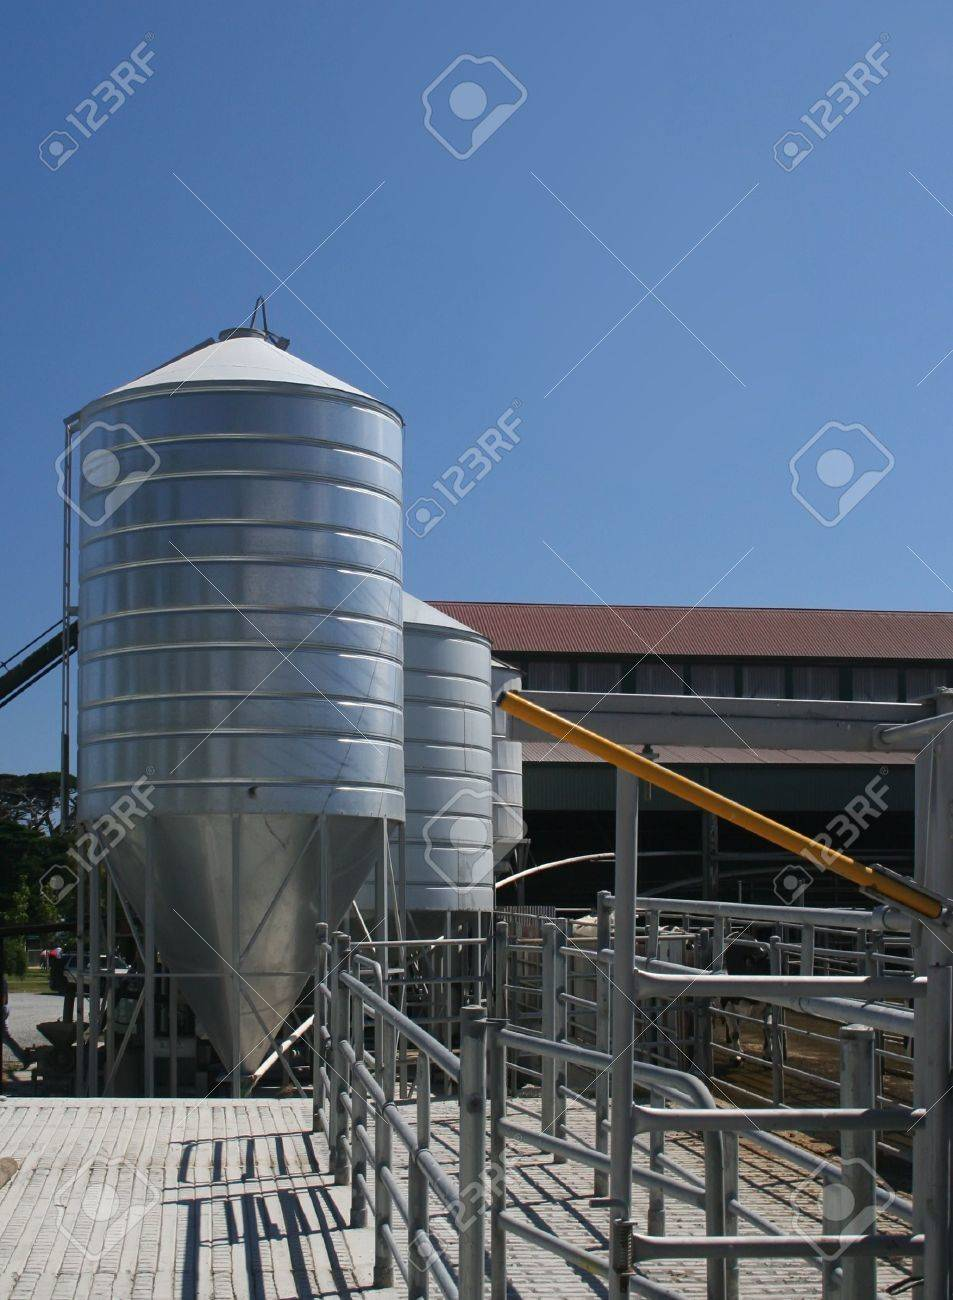 Dairy farm holding pens and grain silo Stock Photo - 4173437